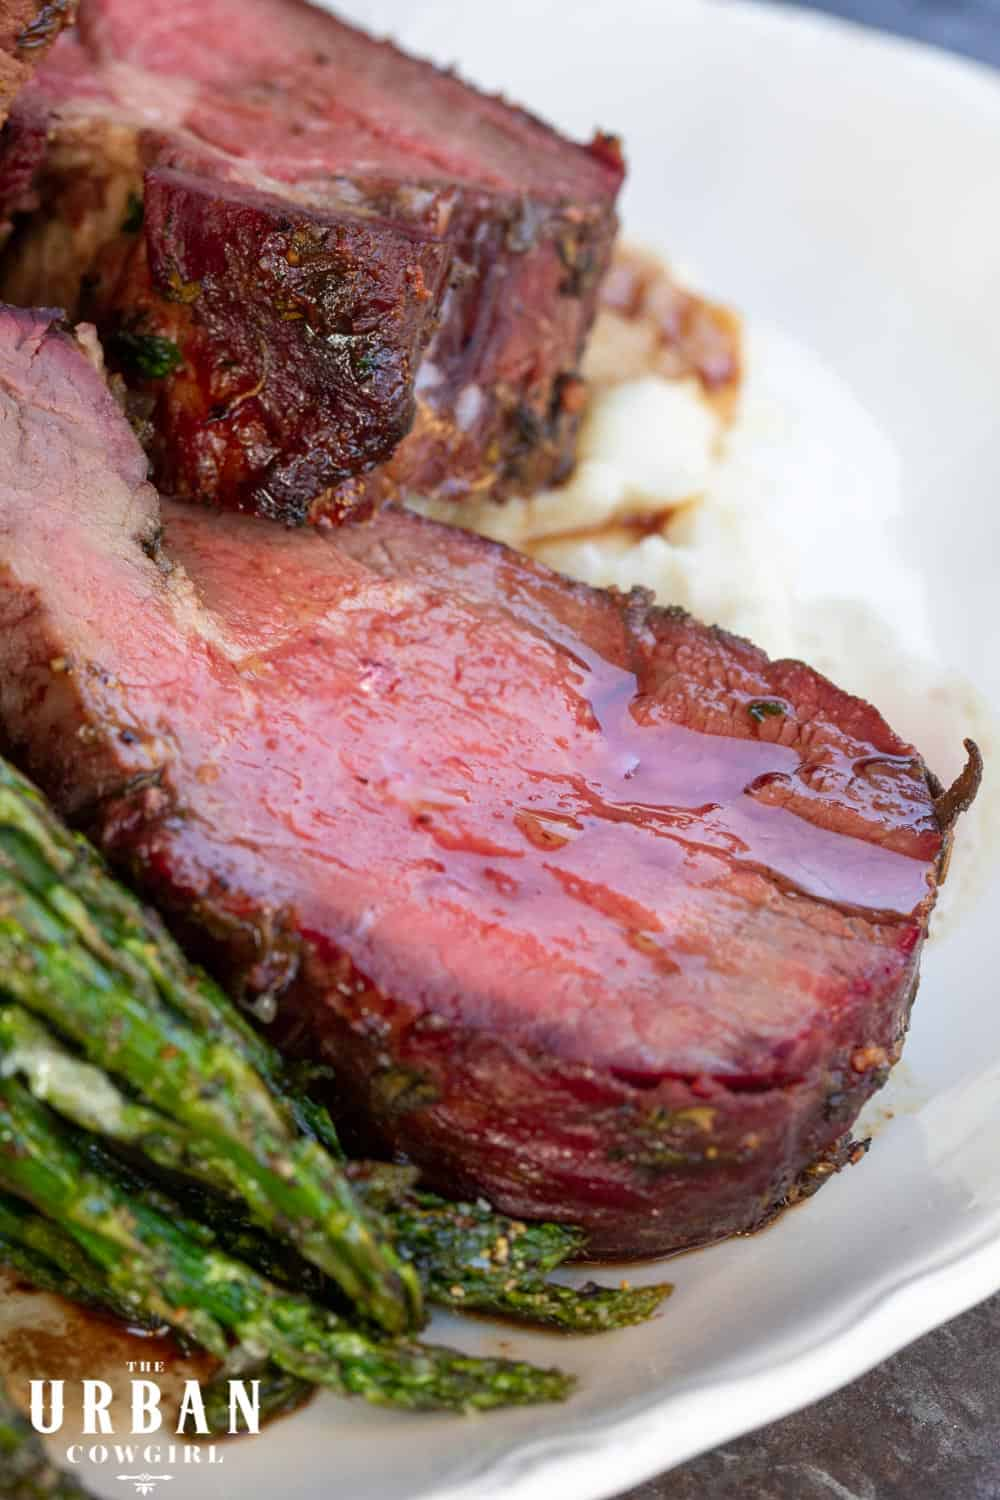 A glistening slab of smoked beef tenderloin with maple shallot juices.